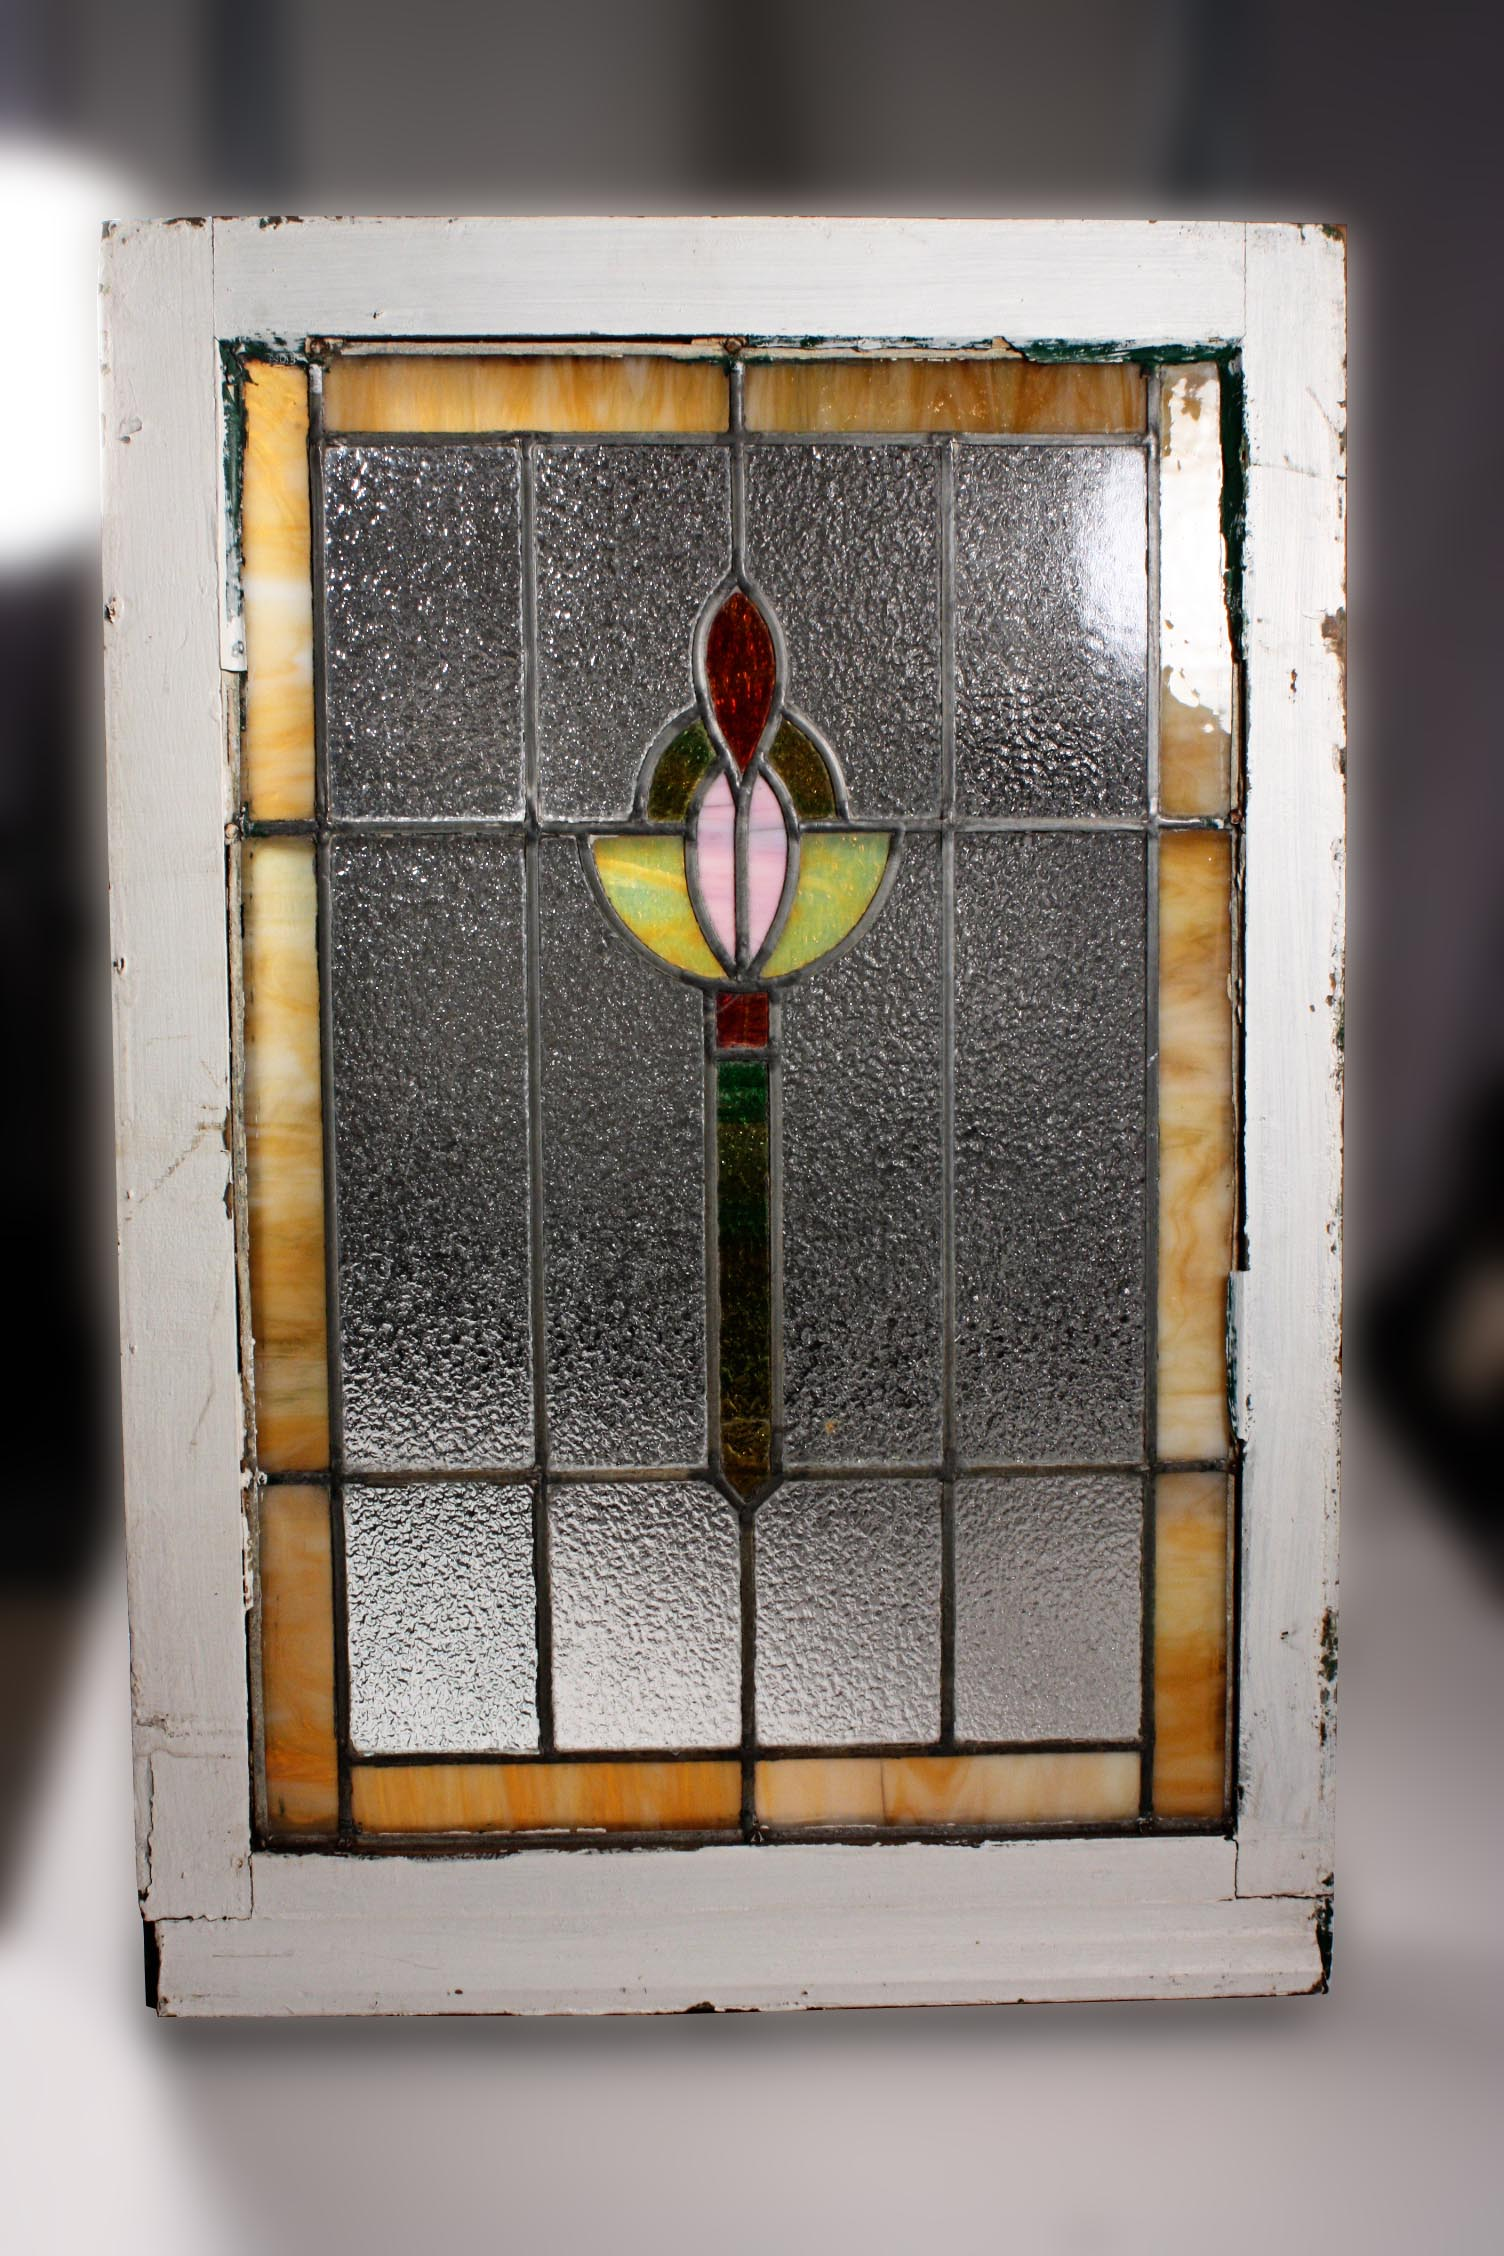 Vibrant antique american stained glass window nsg39 for for Windows for sale